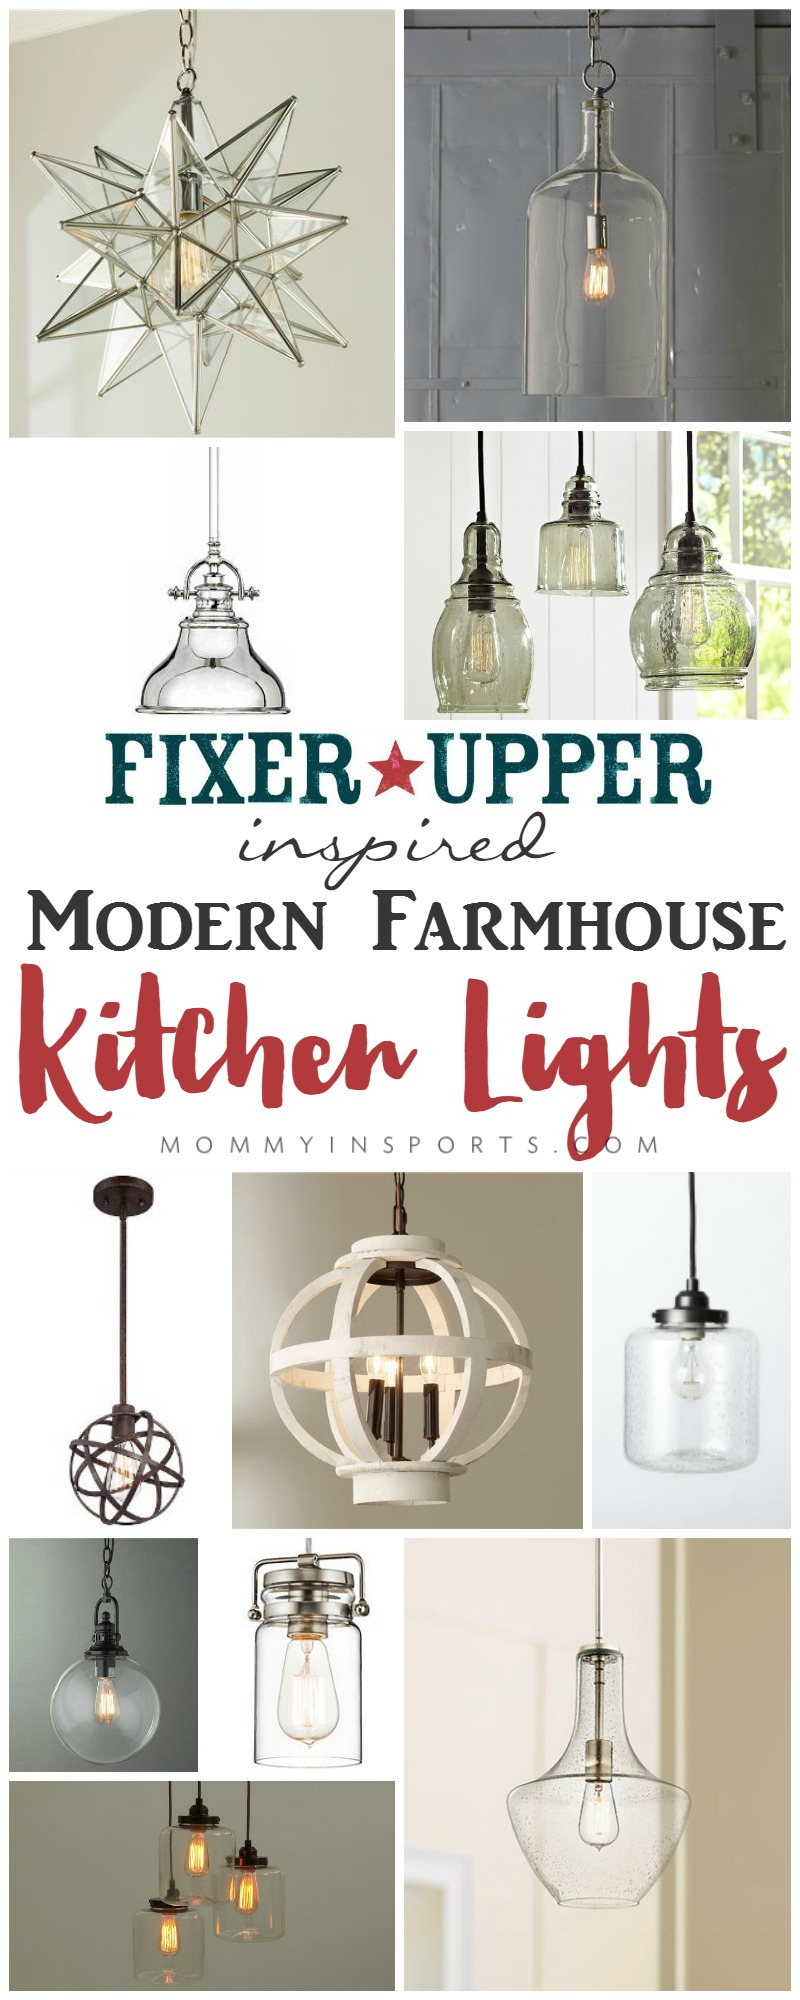 Fixer Upper Inspired Modern Farmhouse Kitchen Lights Kristen Hewitt - Fixer upper kitchen light fixtures